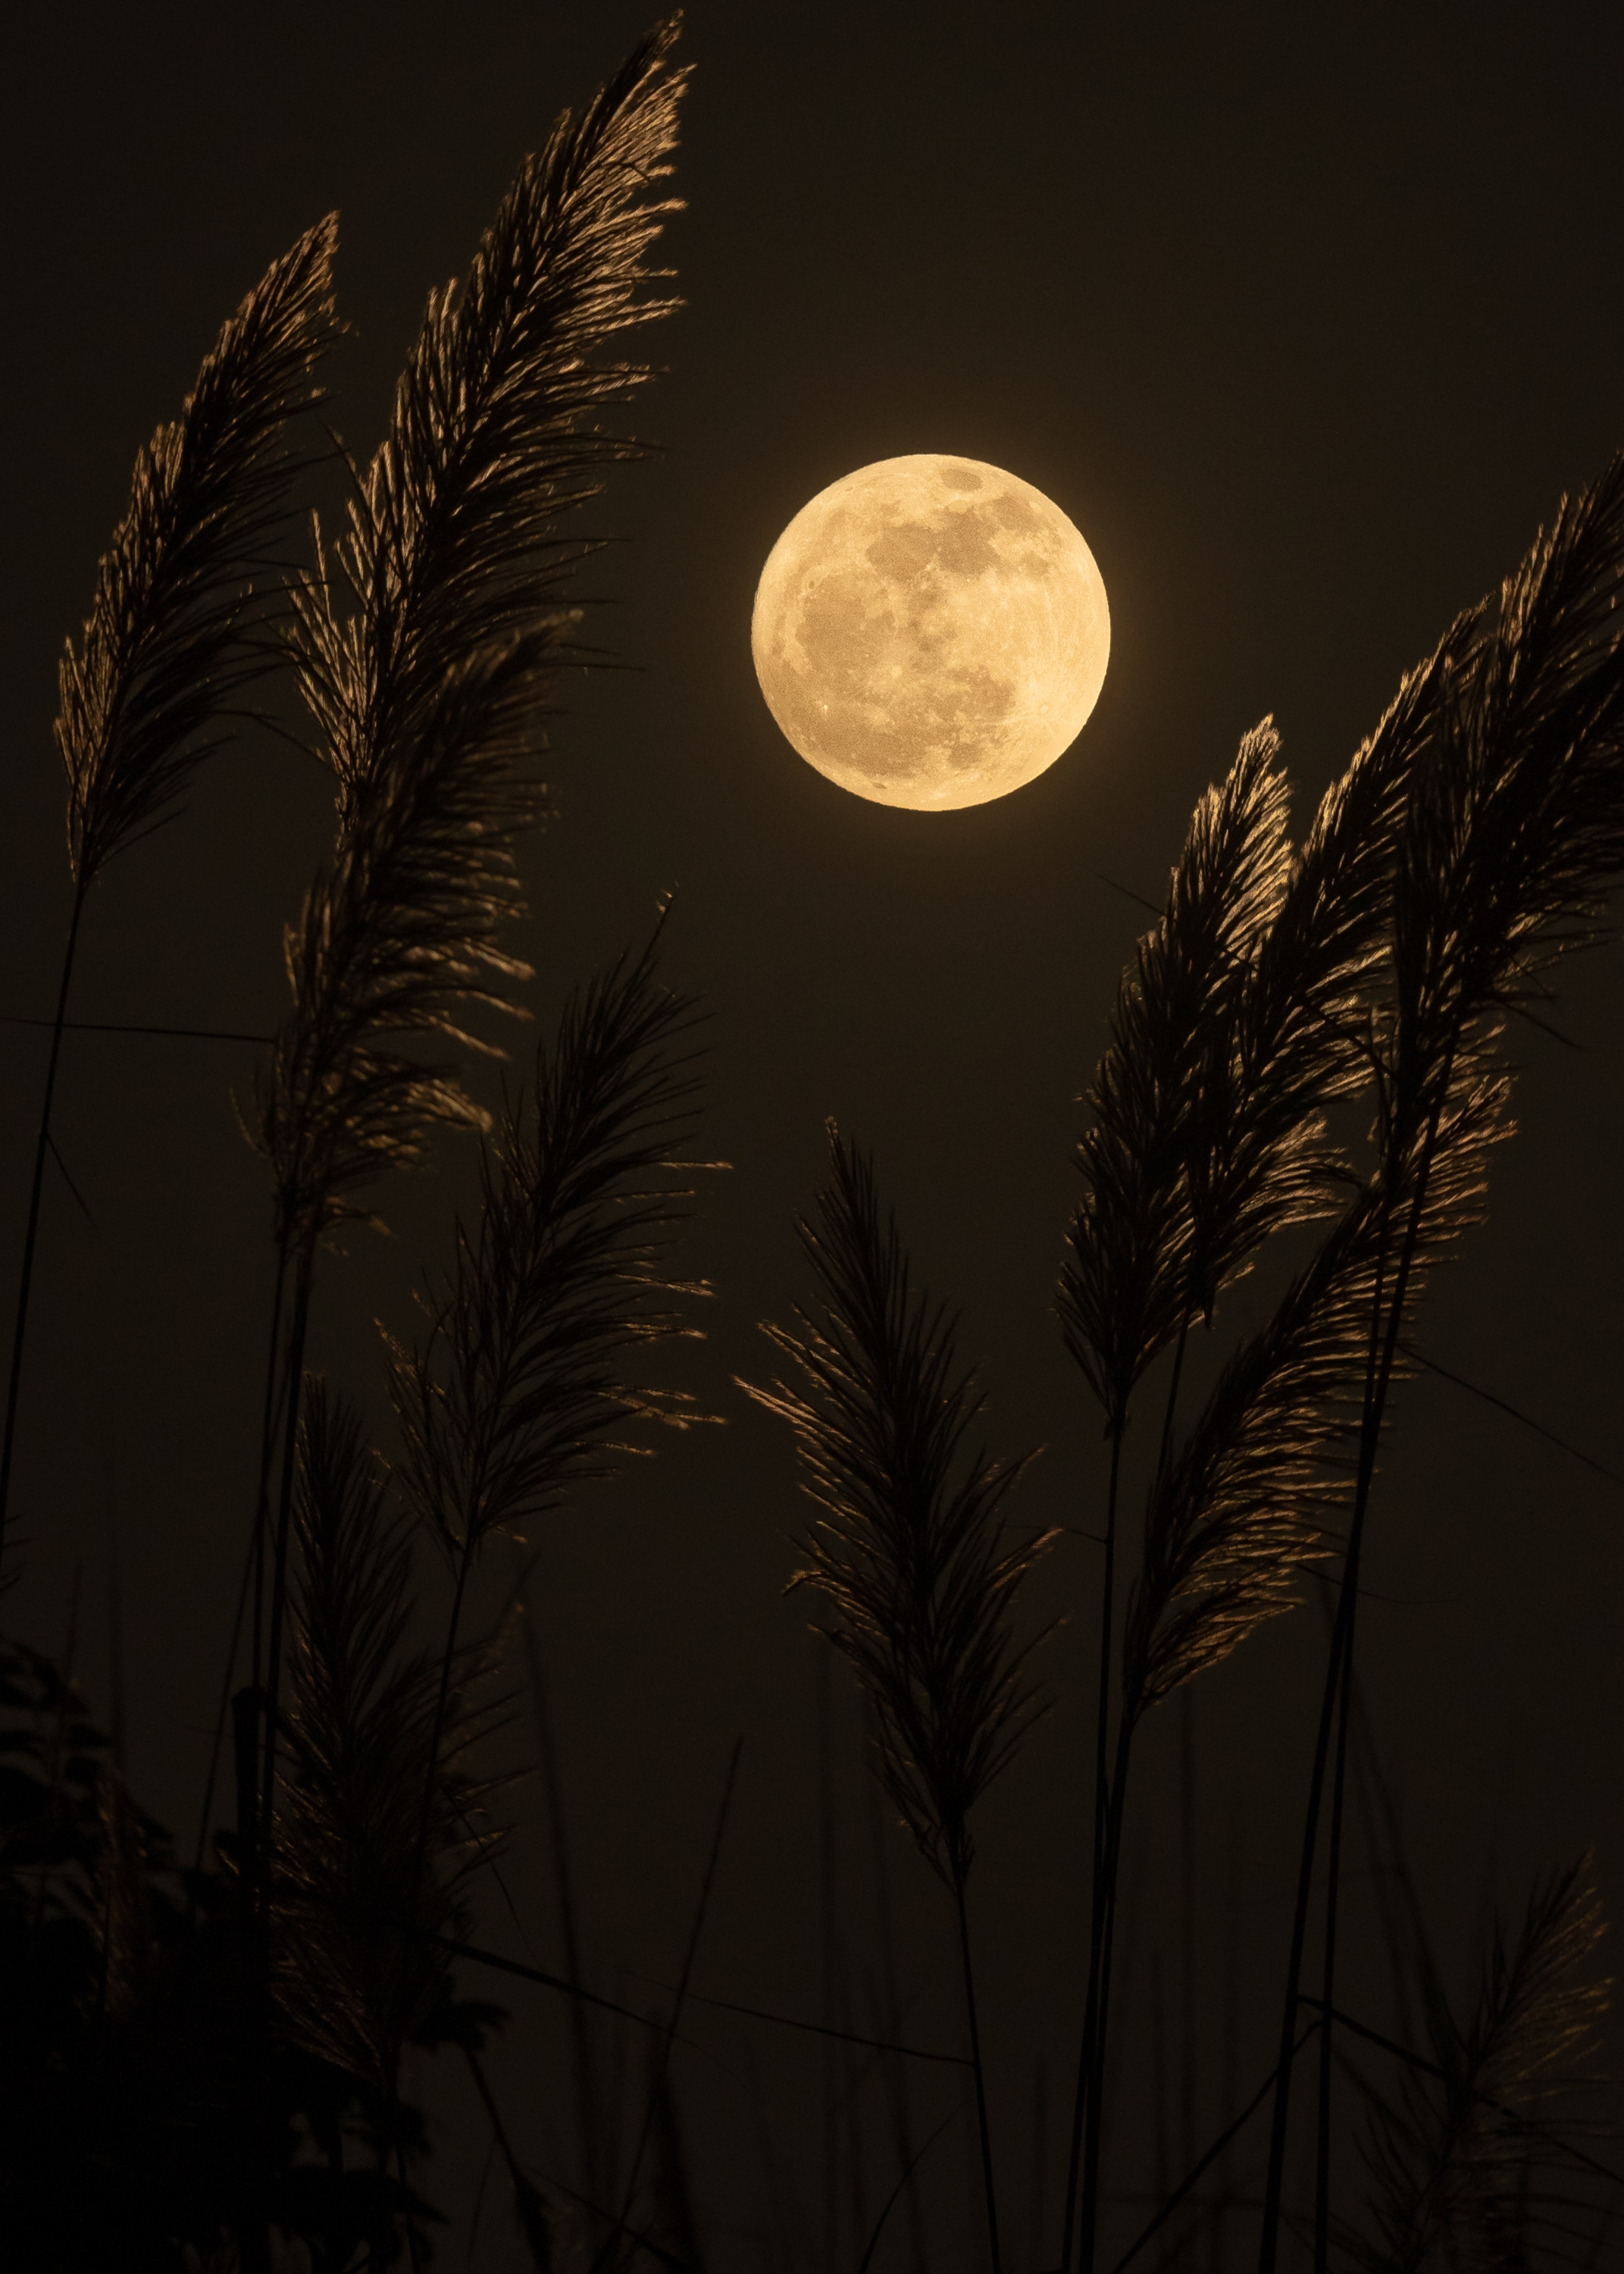 glowing full moon behind wheat grass